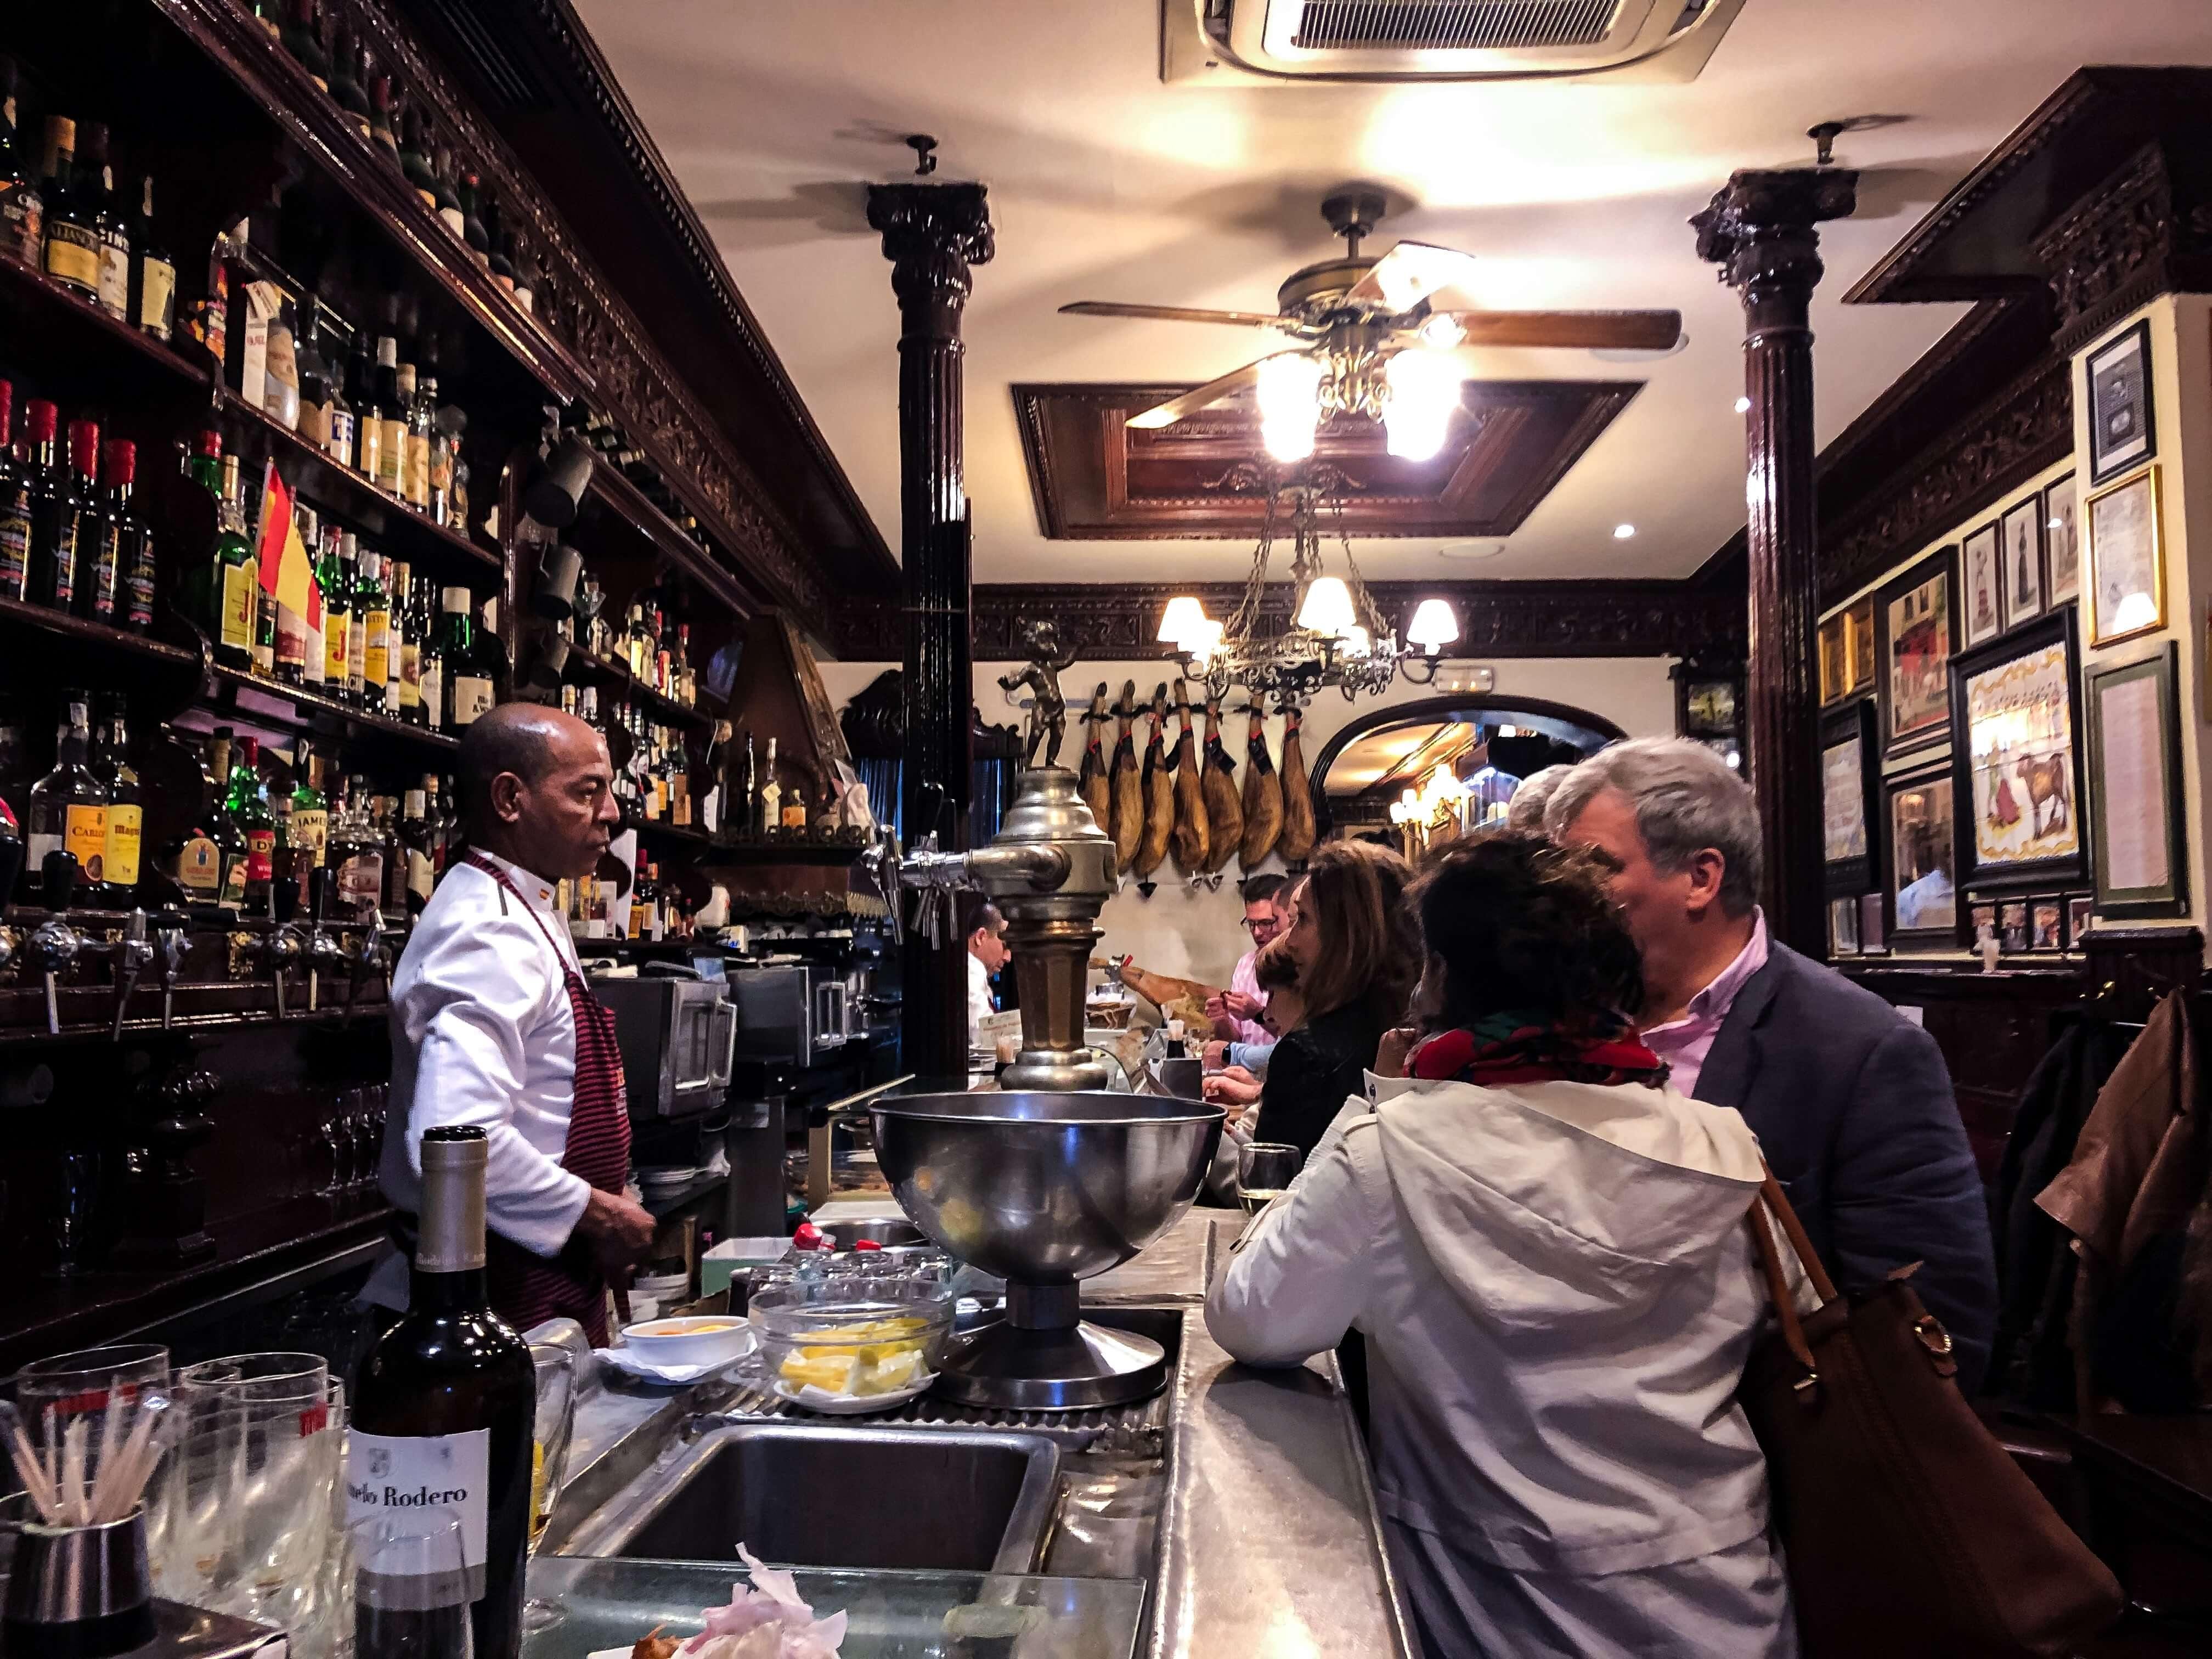 tips for visitors to Spain include adjusting your eating hours